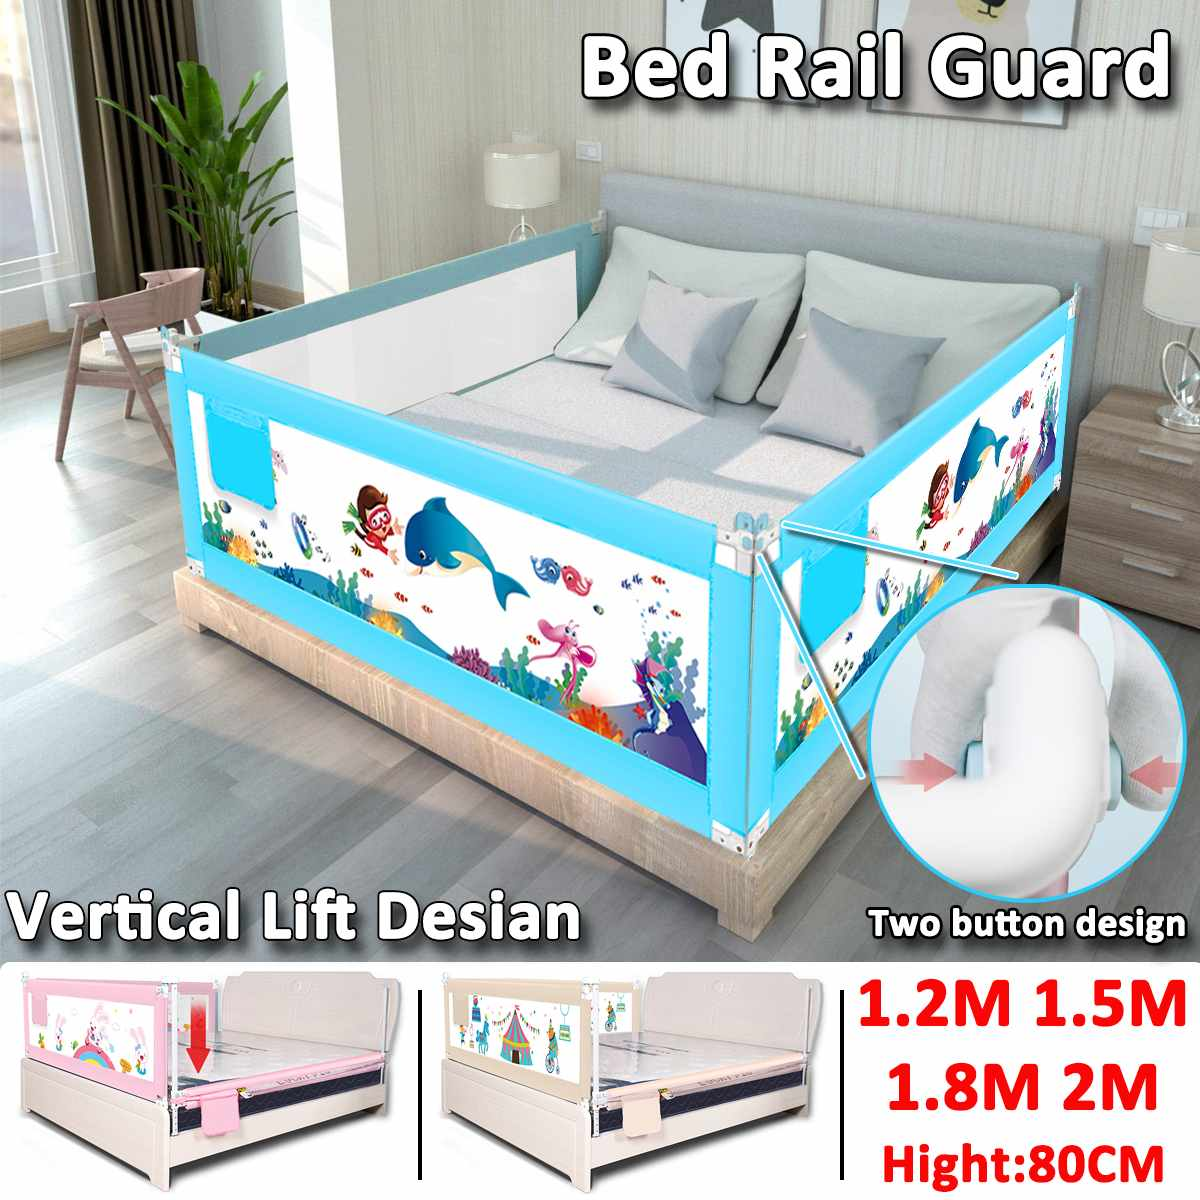 63 to 83 cm Height Adjustable Kid Bed Guard with Foldable Railing Sleep for Baby Safety from Falling from Bed 1